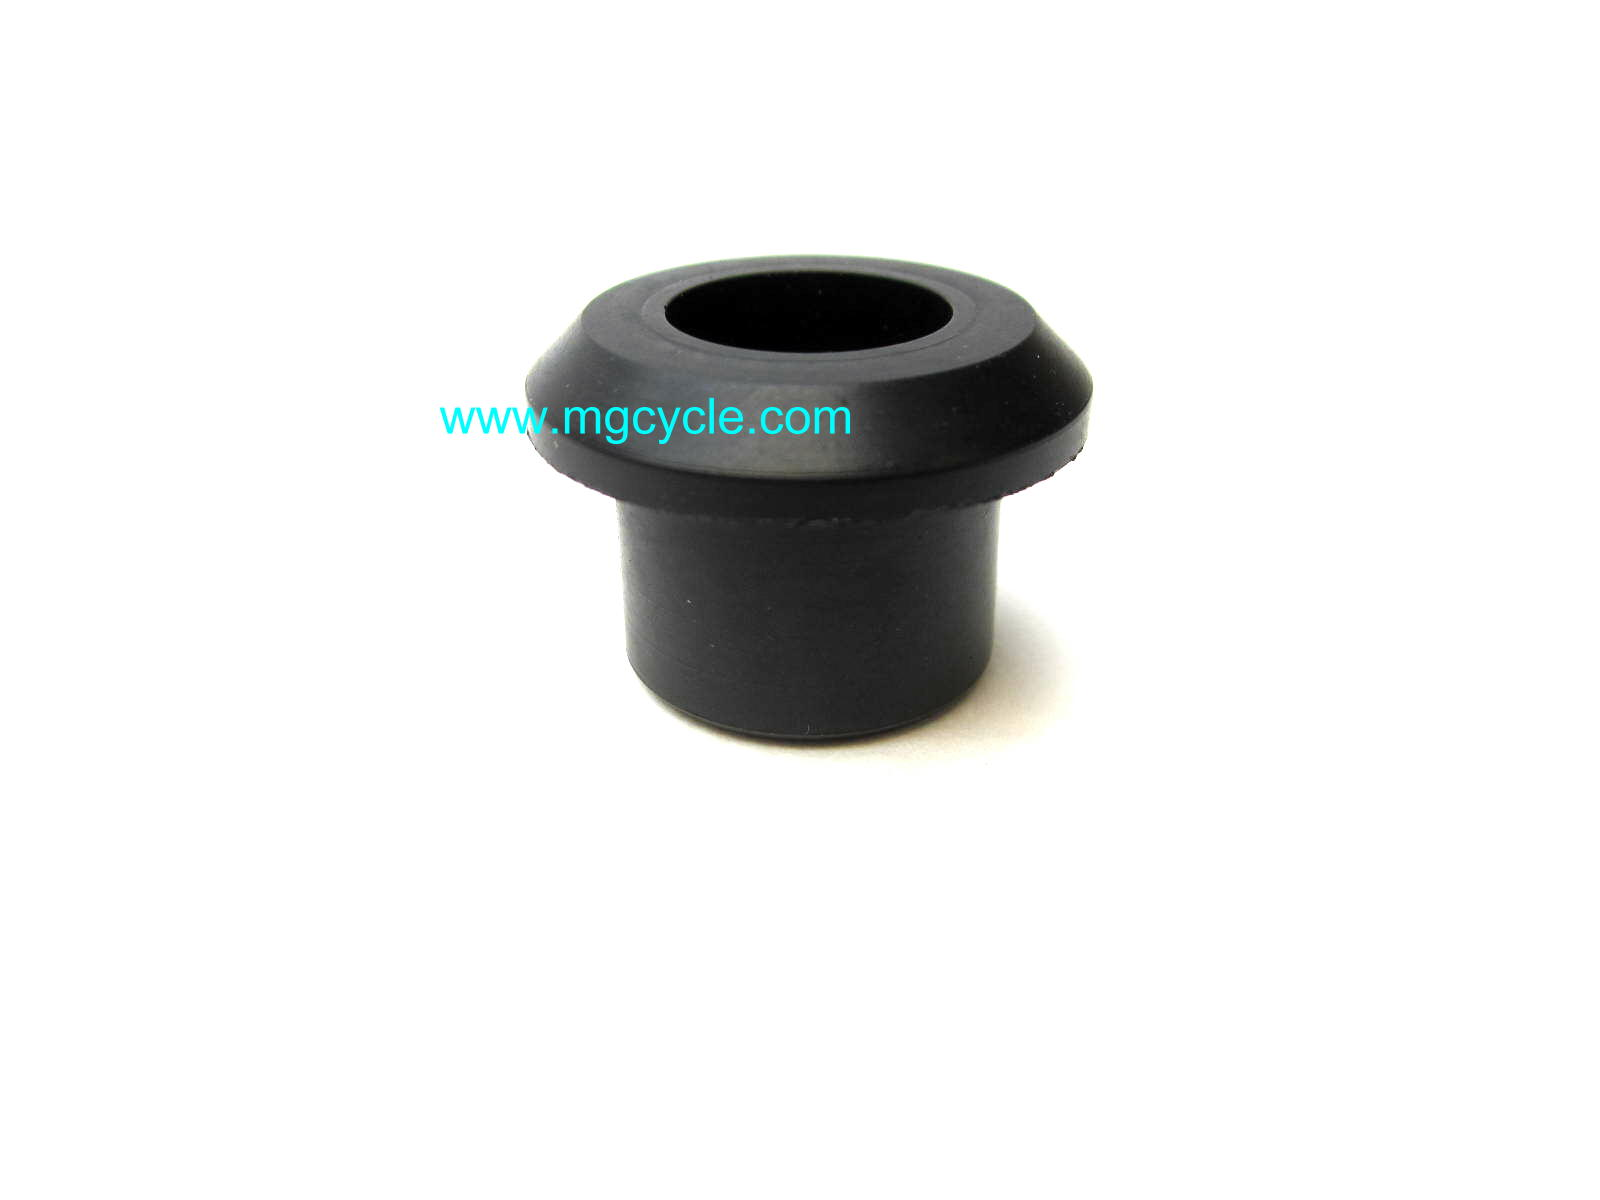 Rubber bushing for rubber mounted handlebars